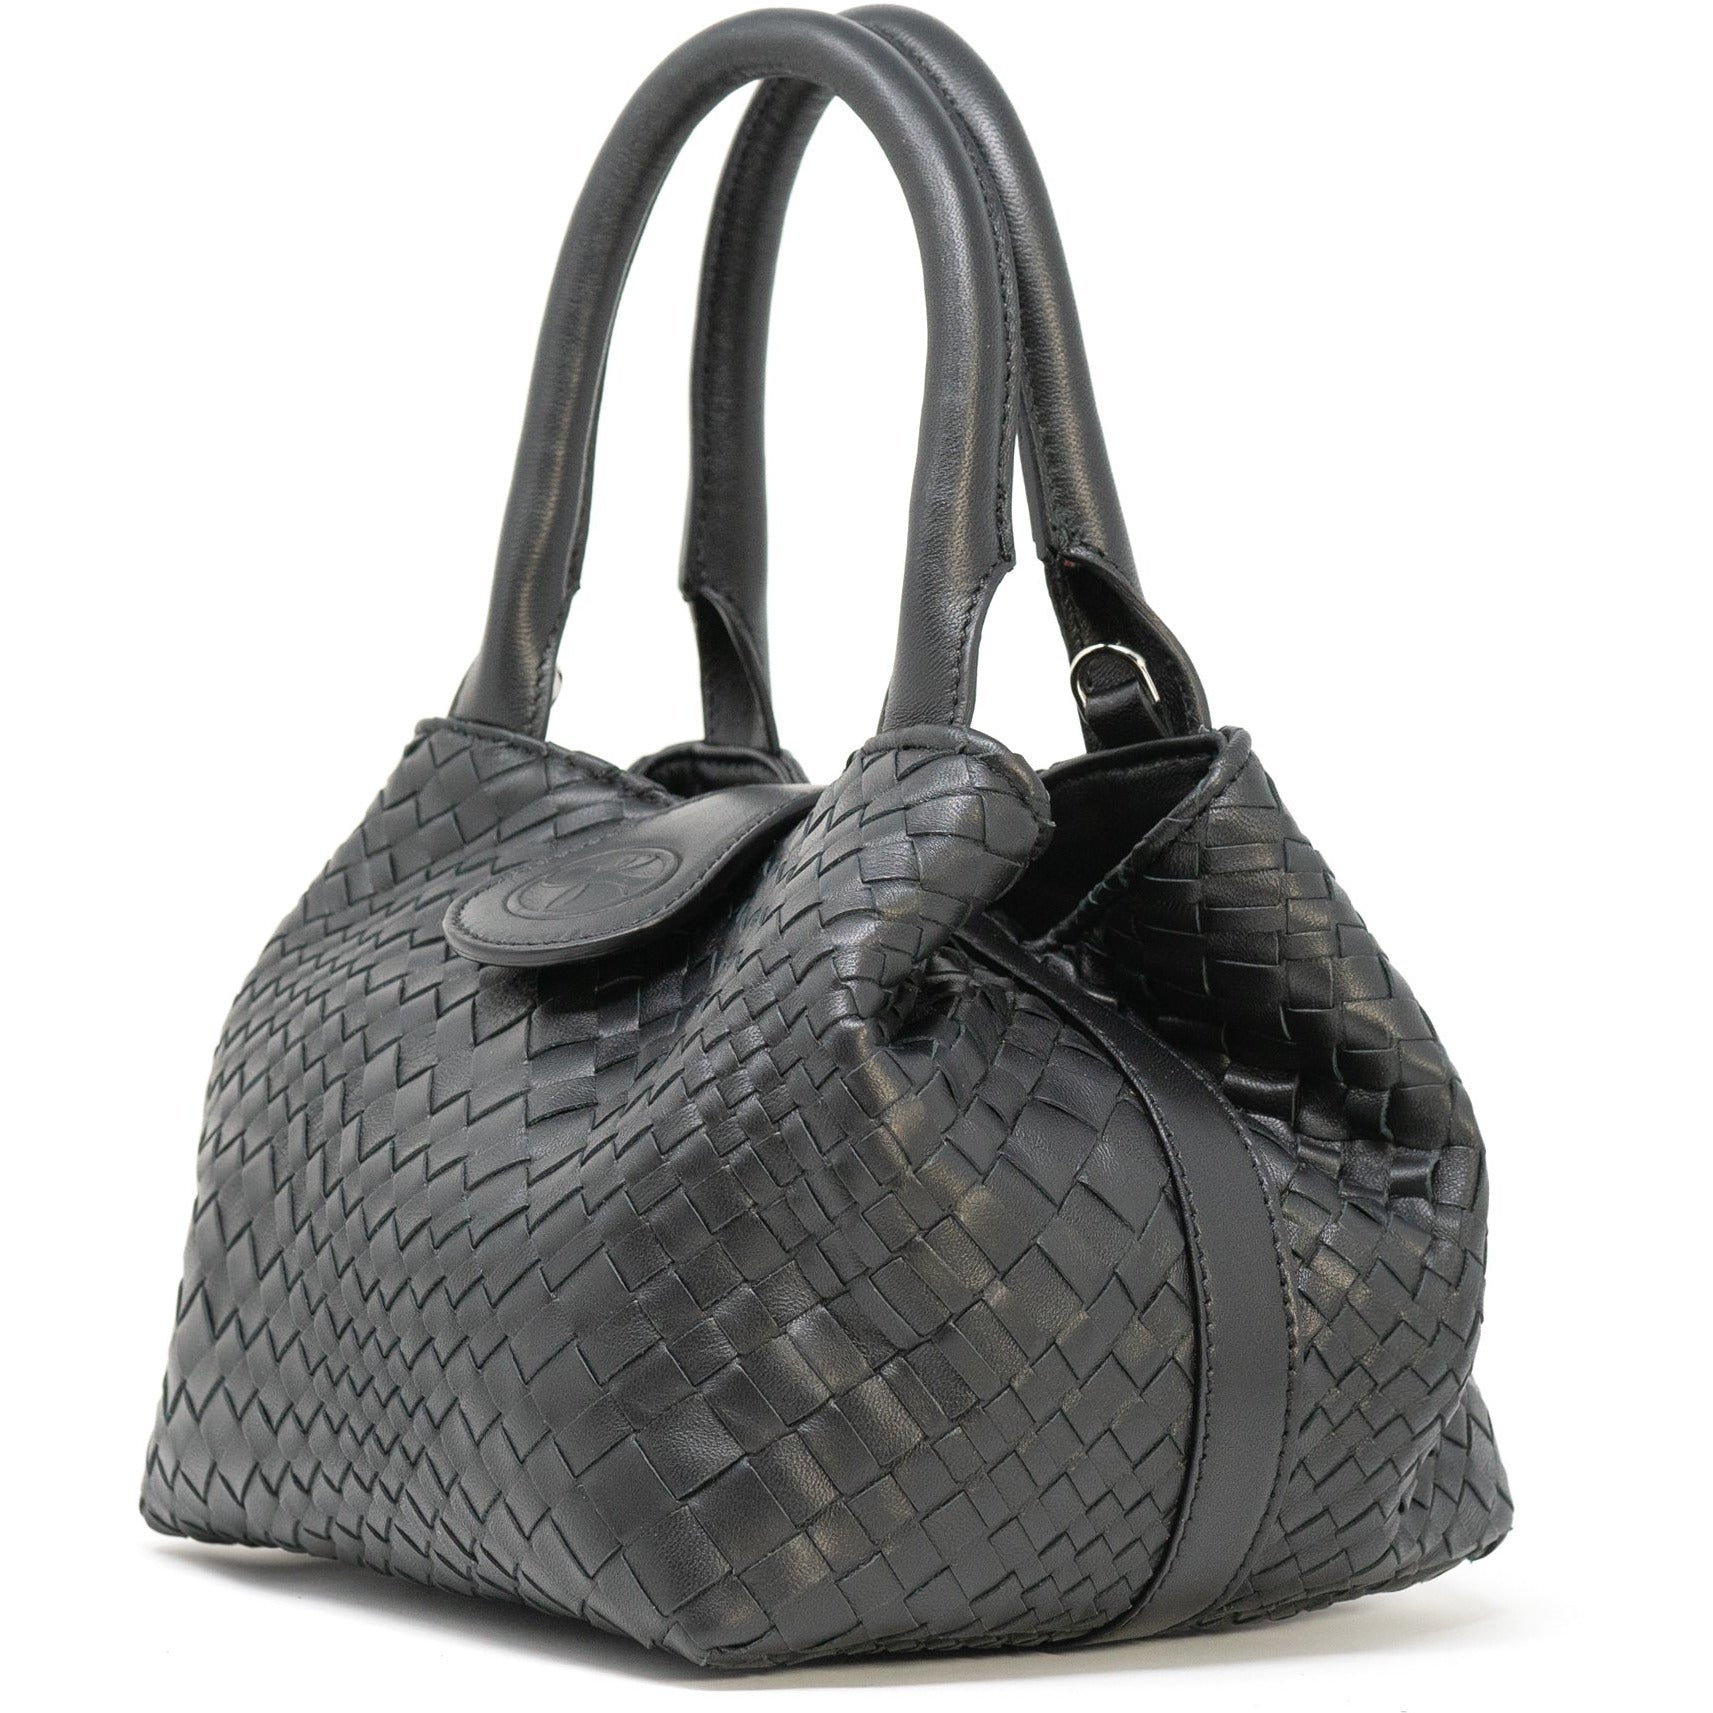 ART Lucia Top Handle Bag - Jennifer Tattanelli Signature Collection